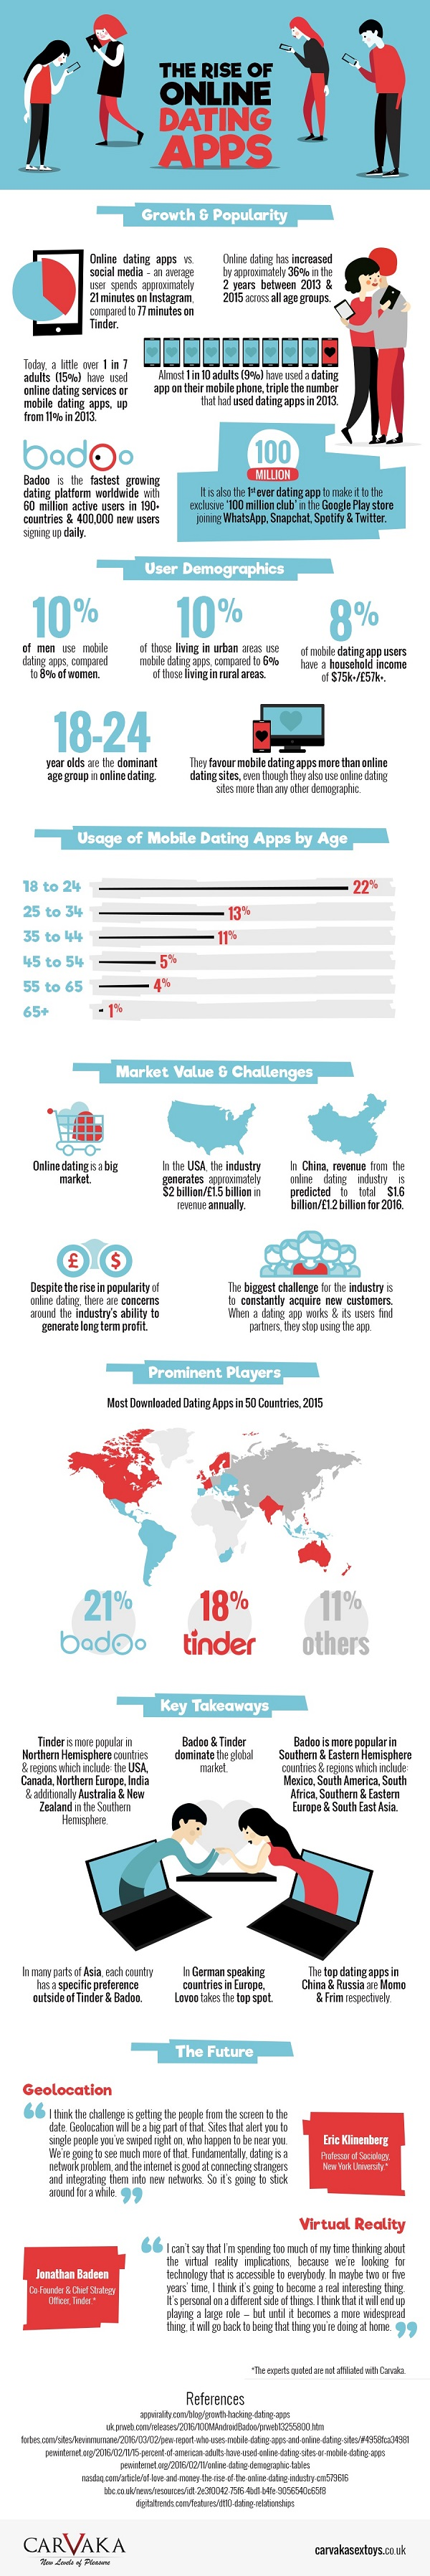 The Rise of Online Dating Apps Infographic